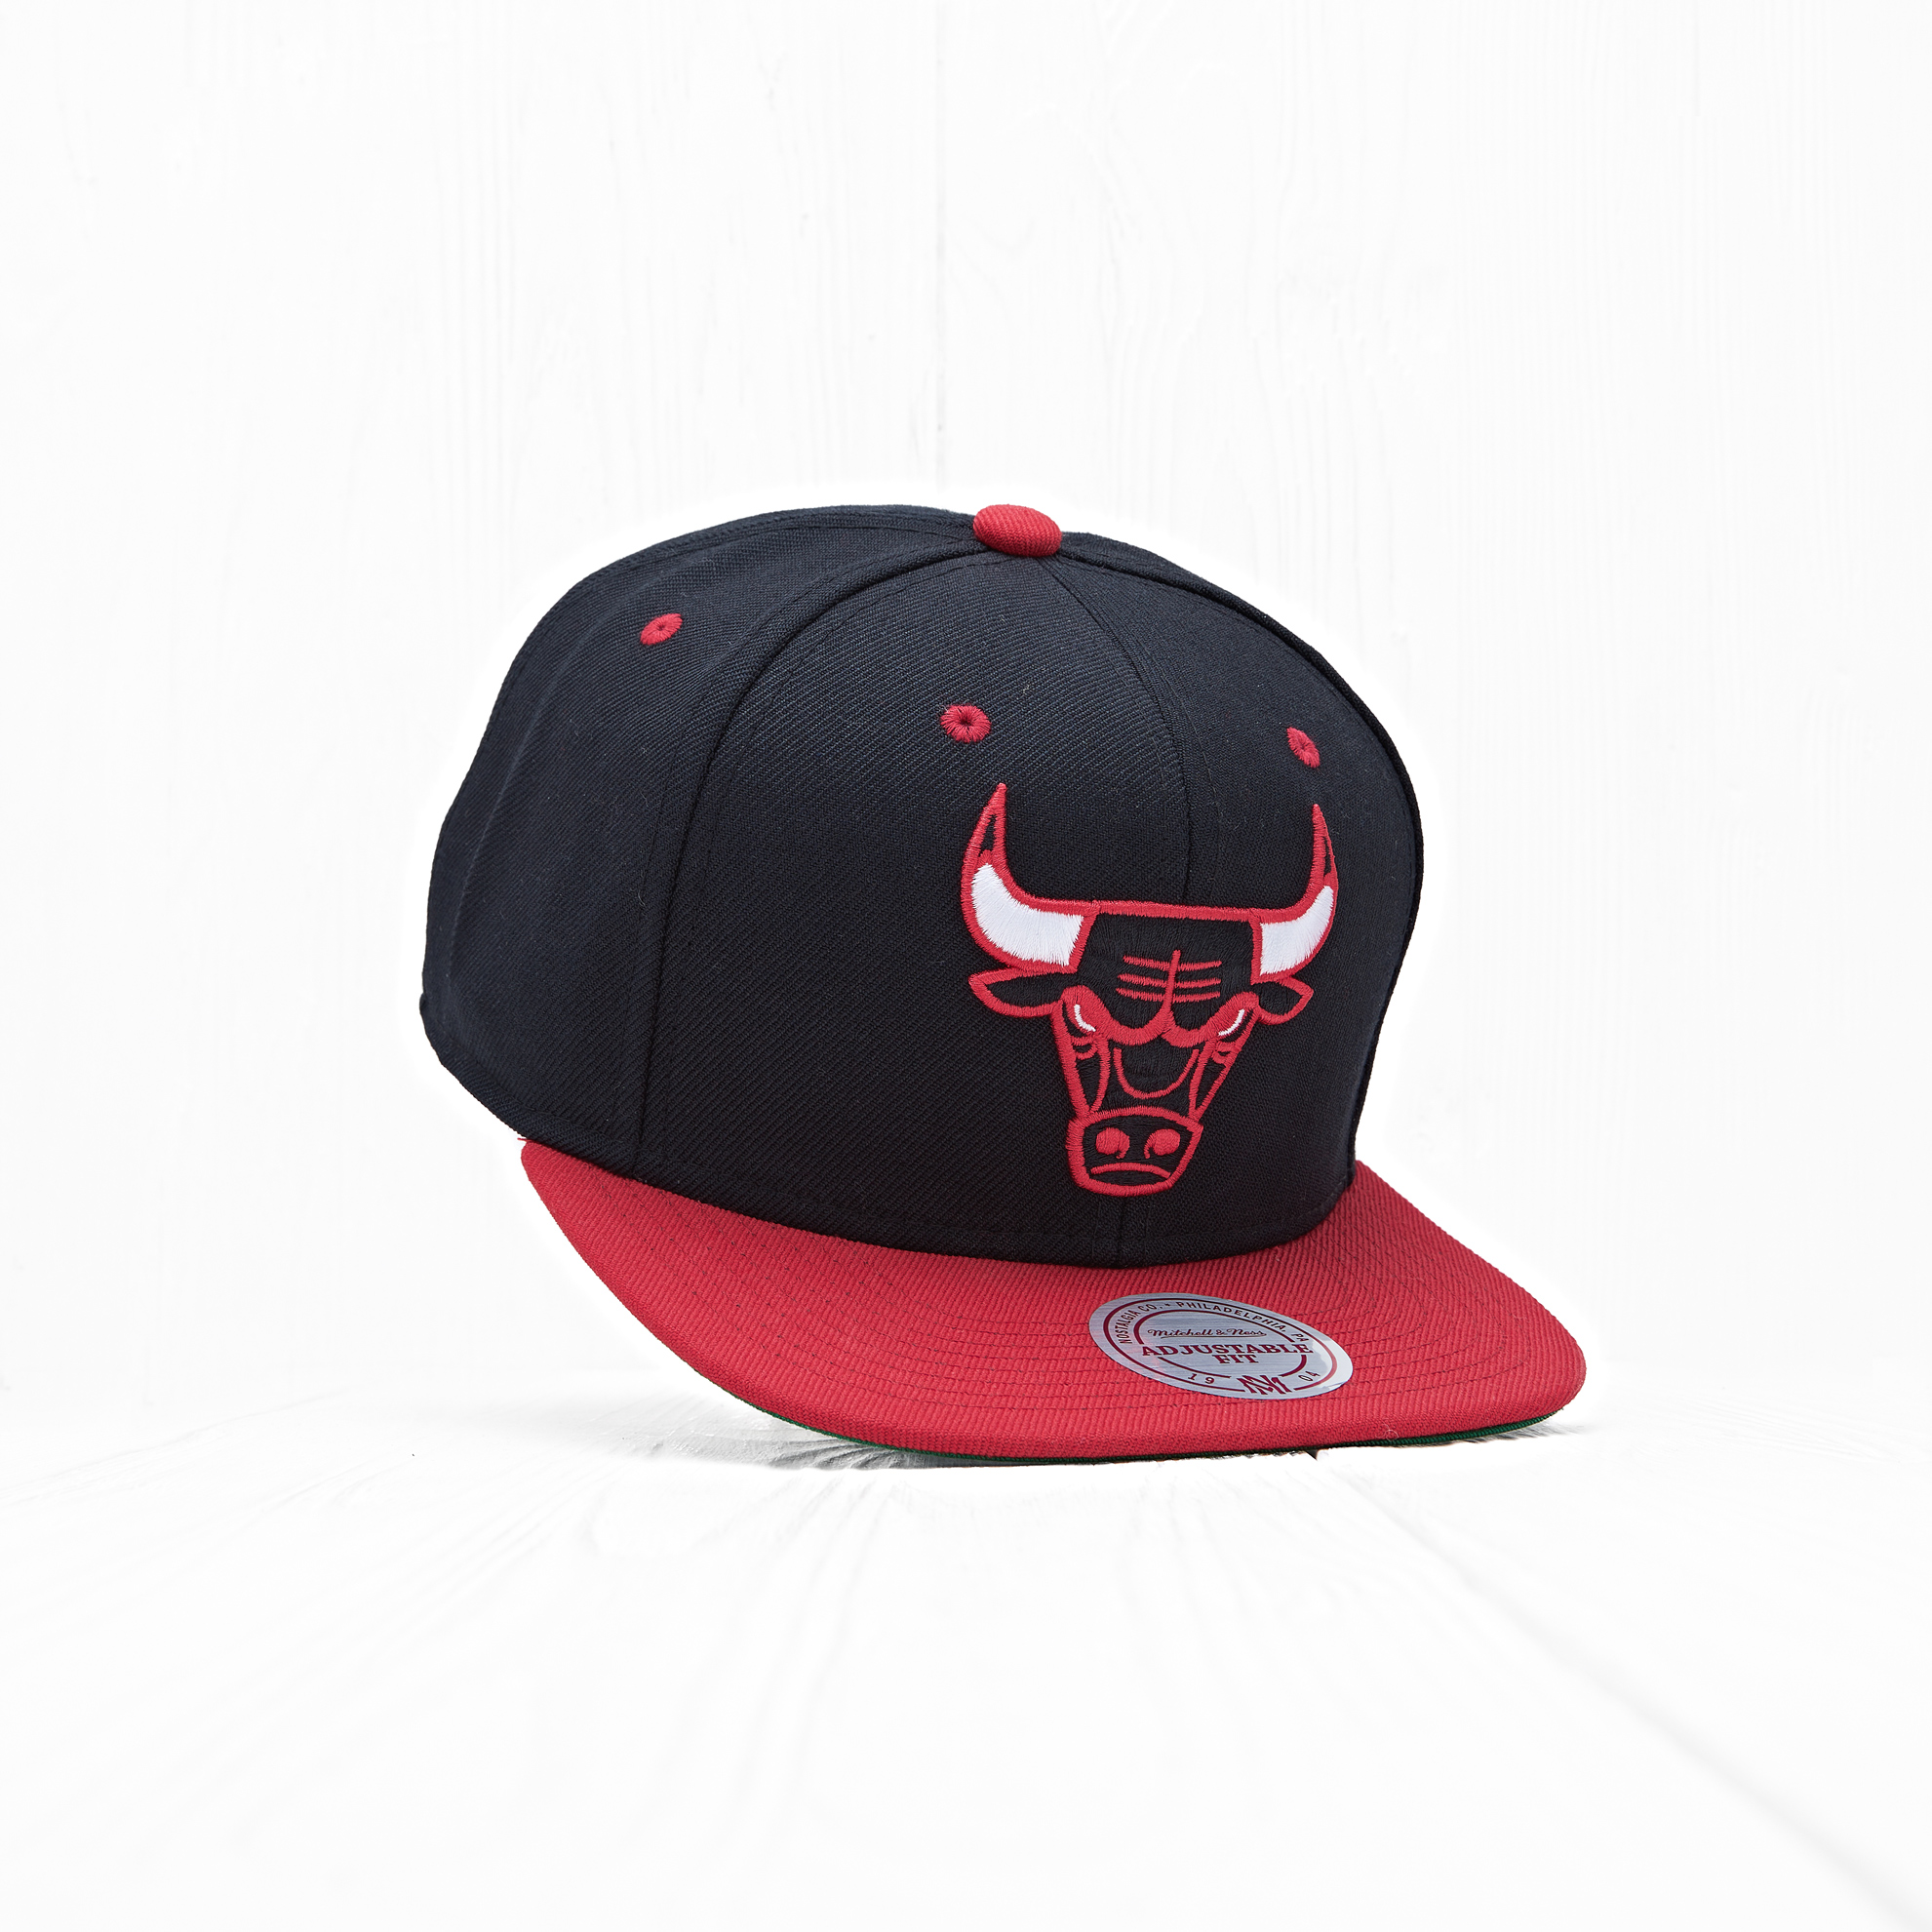 Снепбек Mitchell & Ness NBA CHICAGO BULLS Black/Red/Black